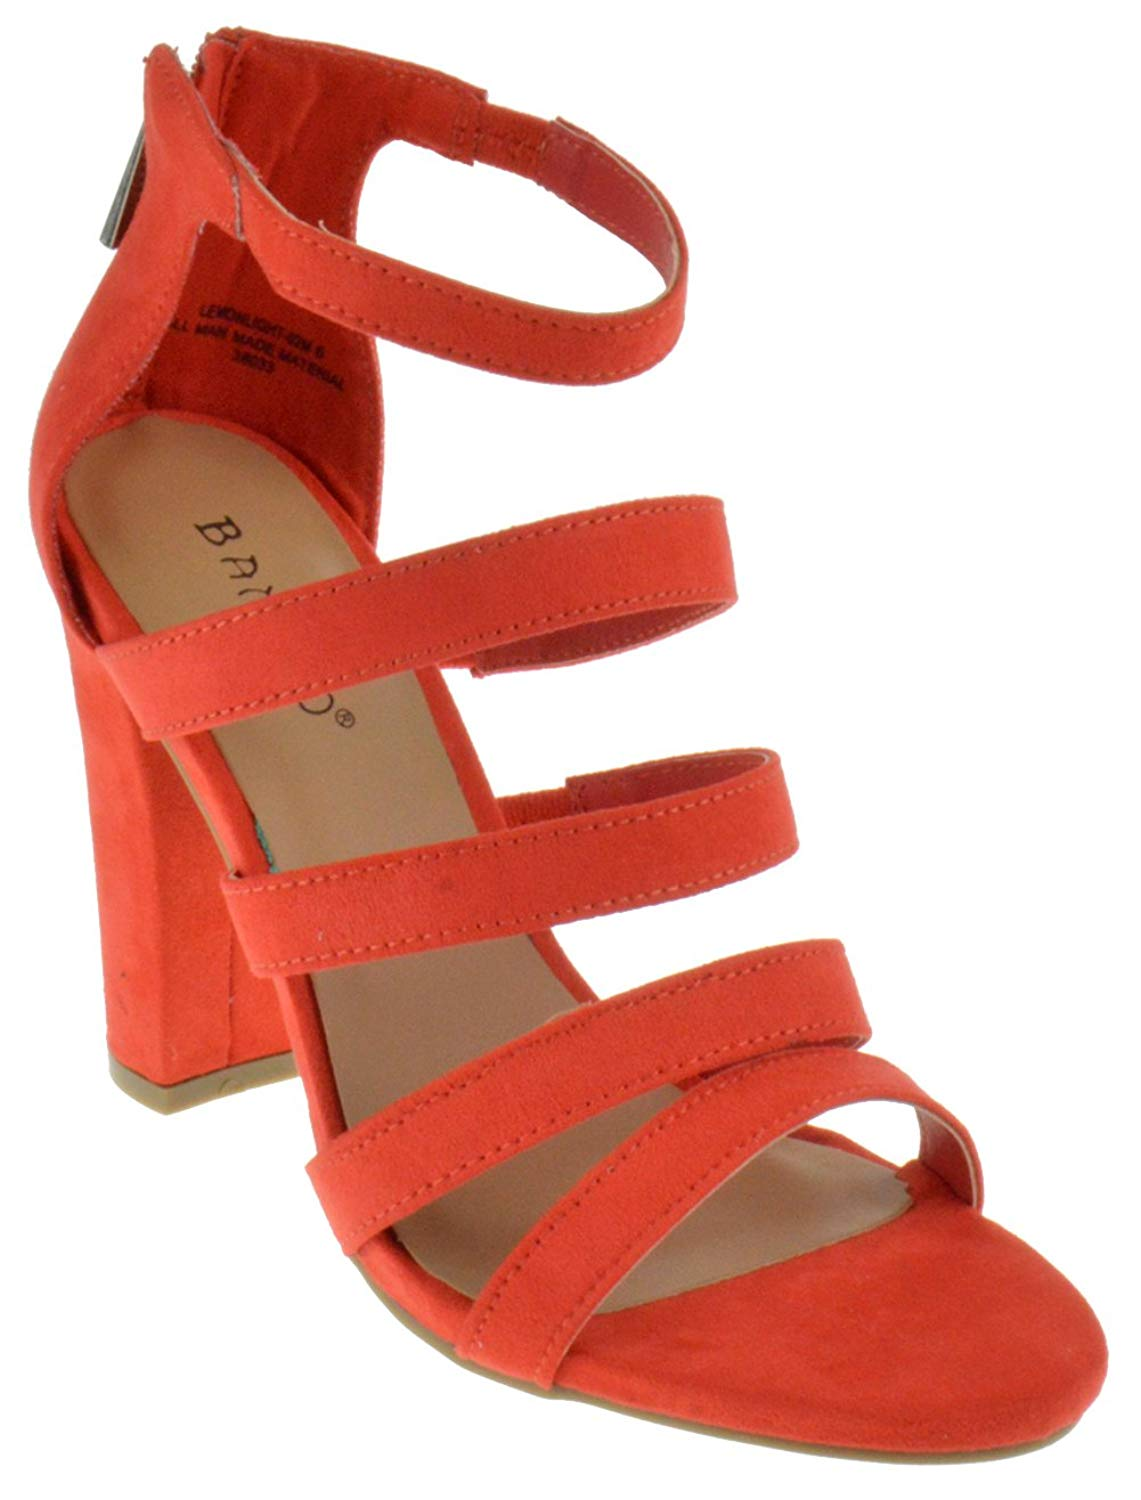 2304aa0d9 Style Fashion. Occasion Casual Shirts. Get Quotations · Bamboo Lemonlight  02 M Womens Strappy Chunky Heeled Gladiator Sandals Orange Suede 8